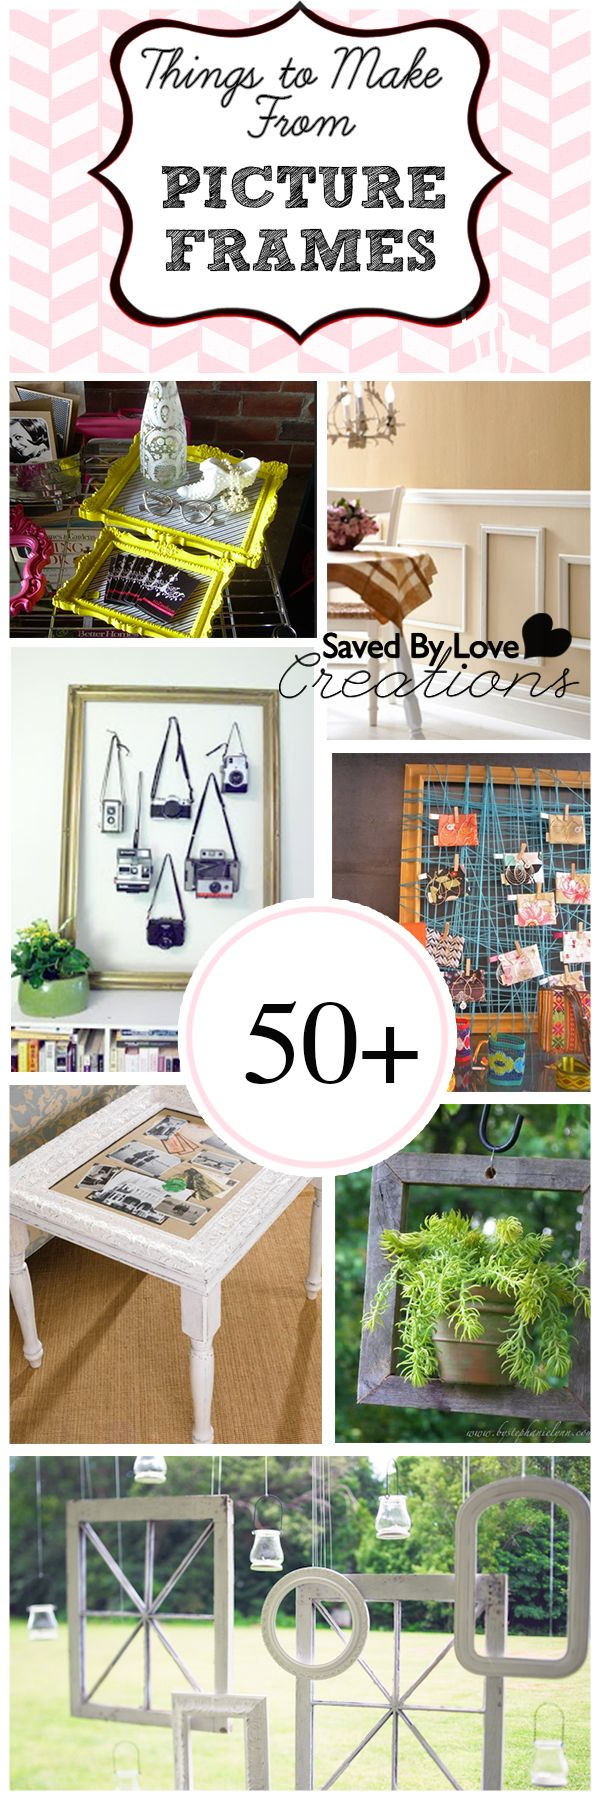 50+ Creative Things to Make From Picture Frames  #repurpose #upcycle #diy @savedbyloves   Many of these ideas we've all seen before, but there are some that I haven't seen before which I think are quite cool!